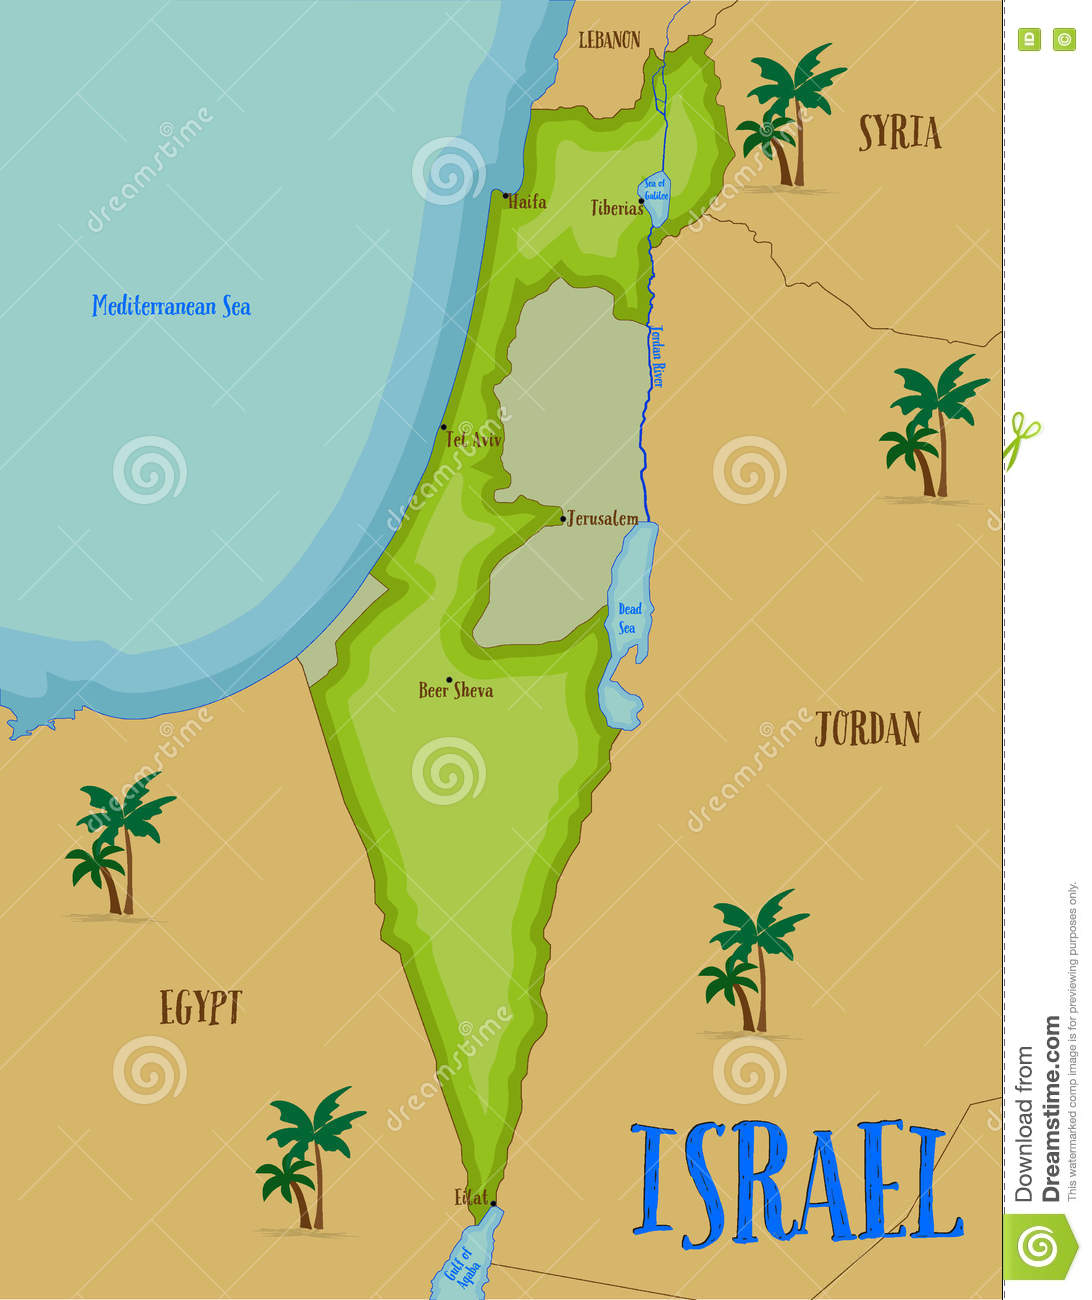 Map Of Israel In Cartoon Style Stock Vector Illustration - Isreal map